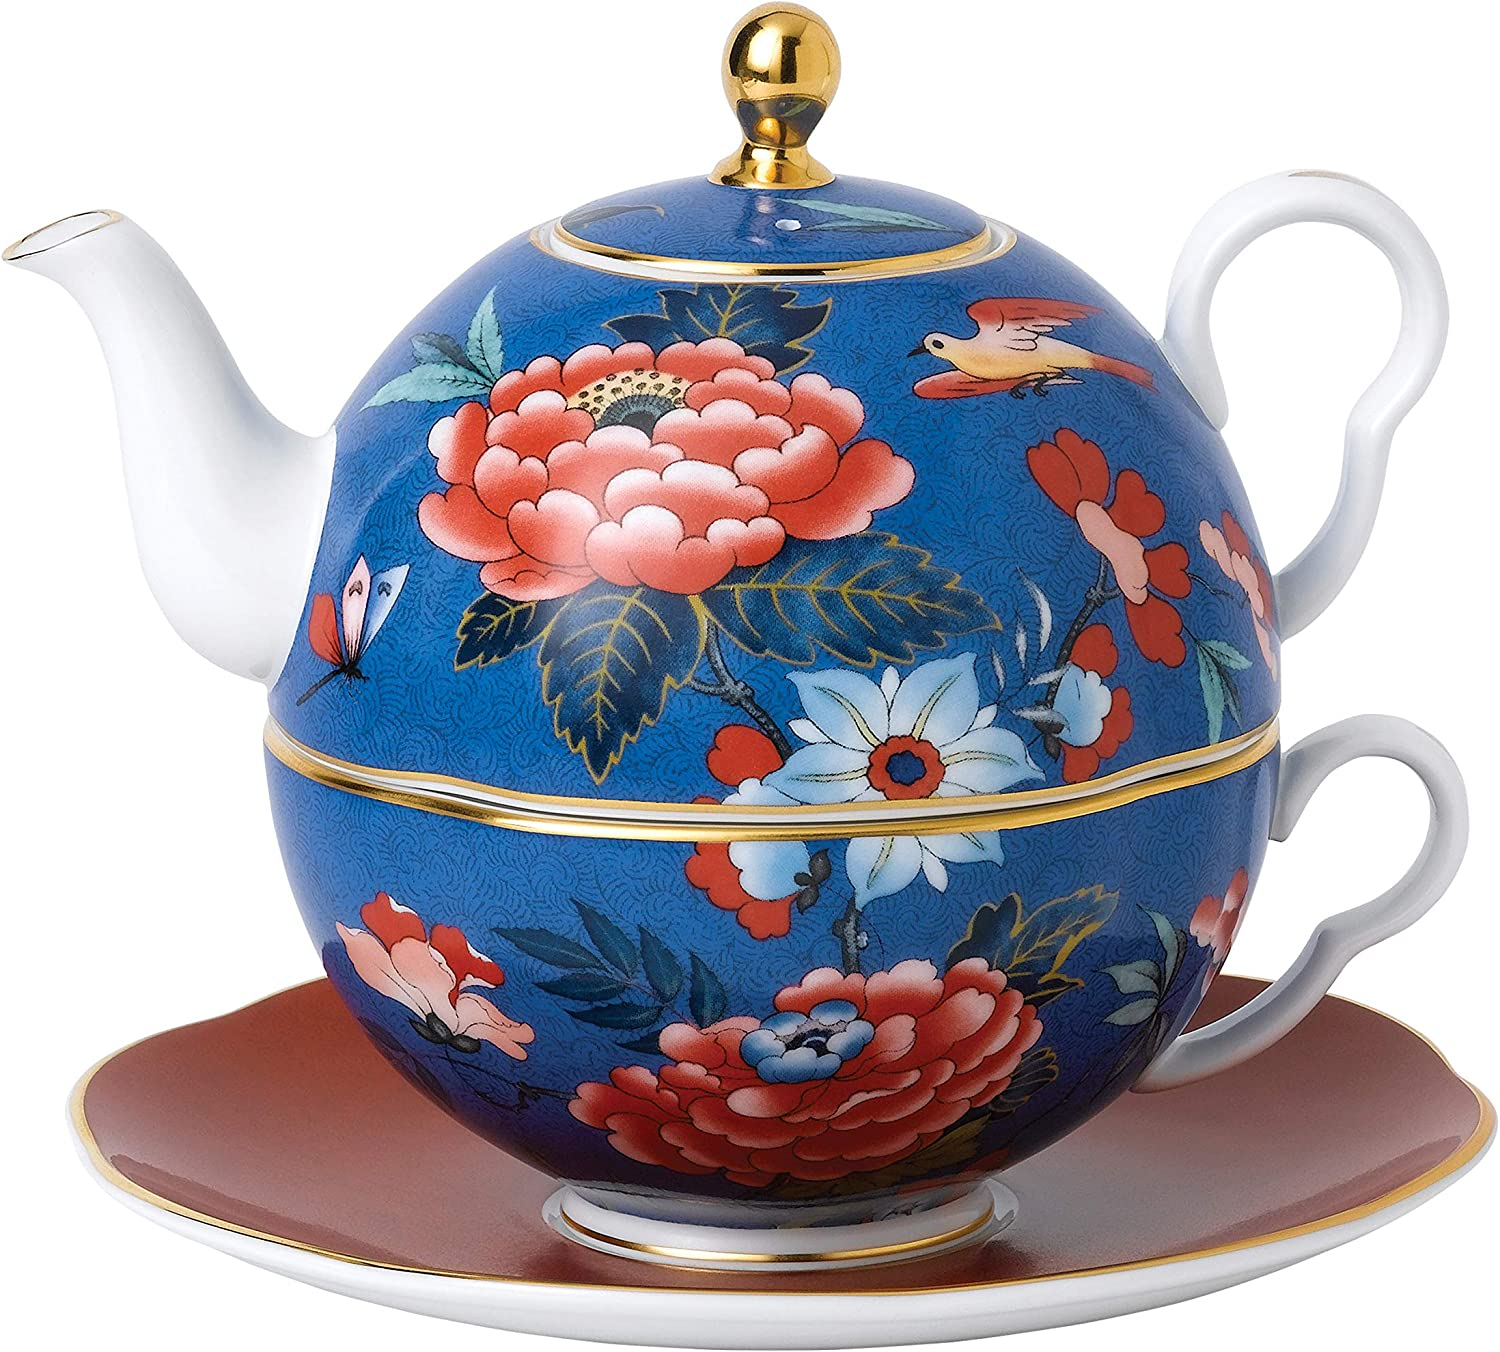 Wedgwood Paeonia Blush, 18cm, Tea for One Blue/Red